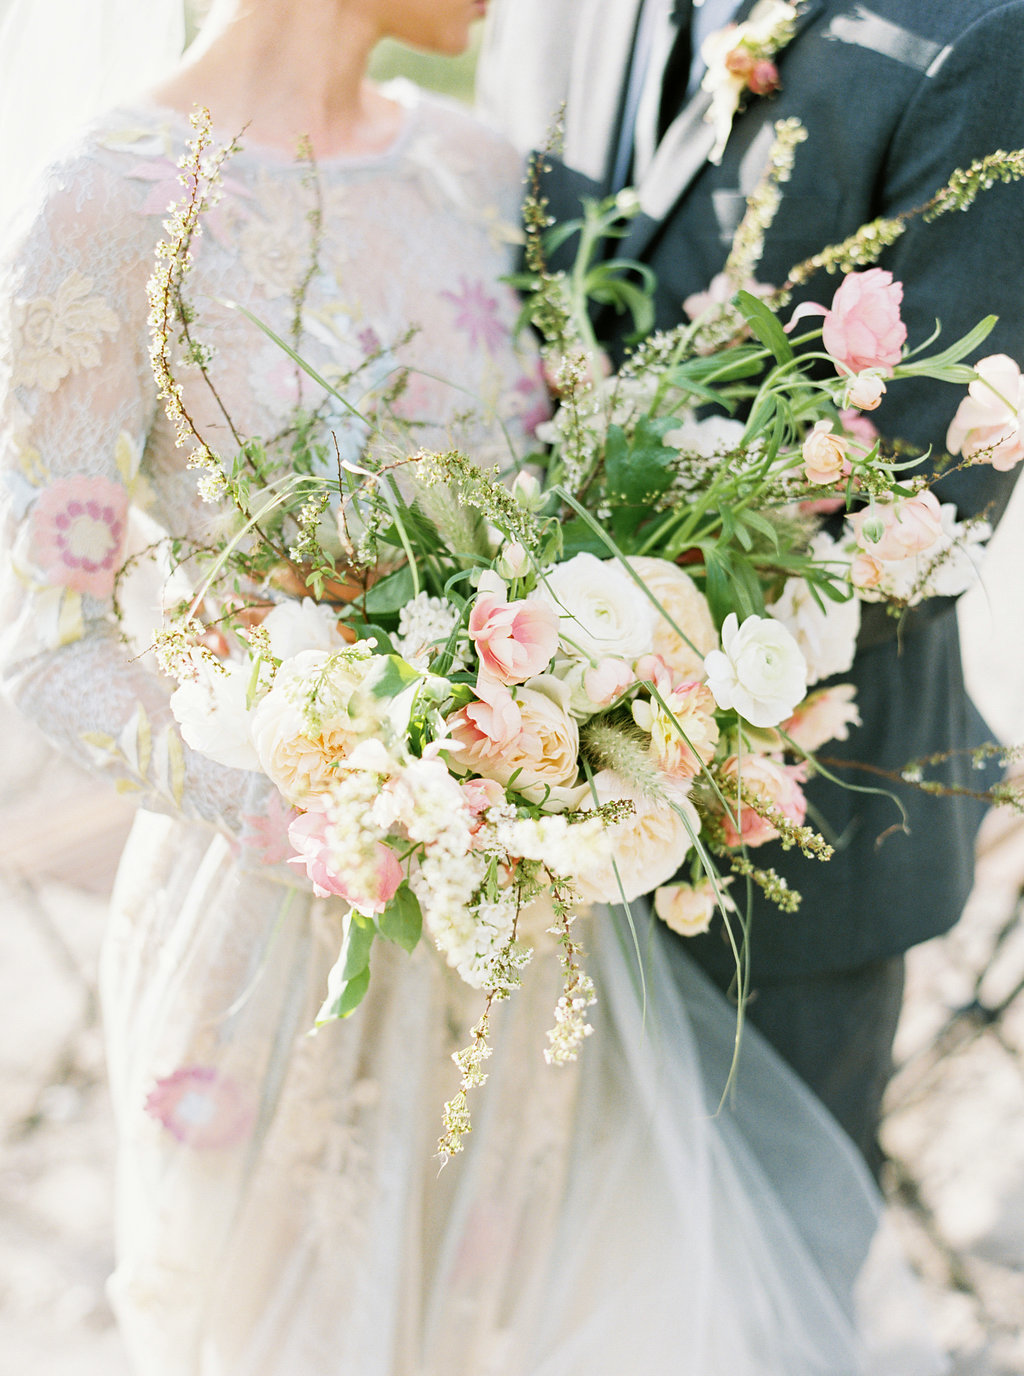 wedding bouquets - photo by Be Light Photography http://ruffledblog.com/coastal-oregon-inspiration-with-a-show-stopping-wedding-gown